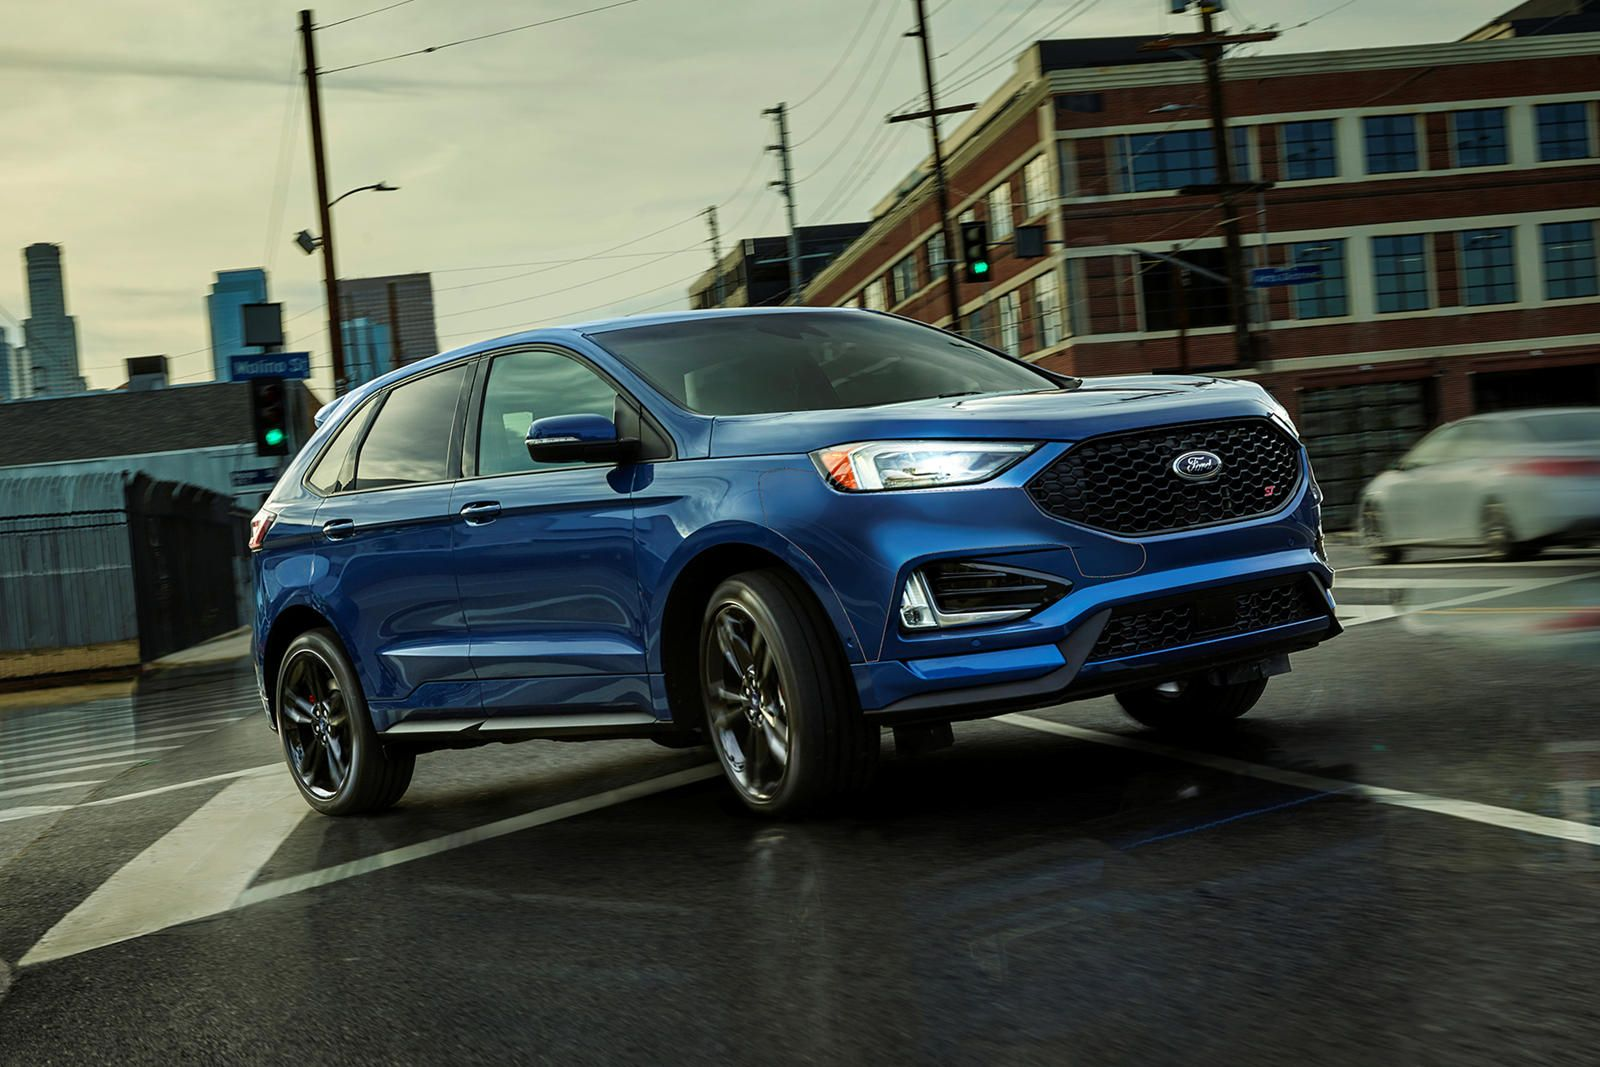 2019 Ford Edge Can Seamlessly Switch Between Awd And Full Front